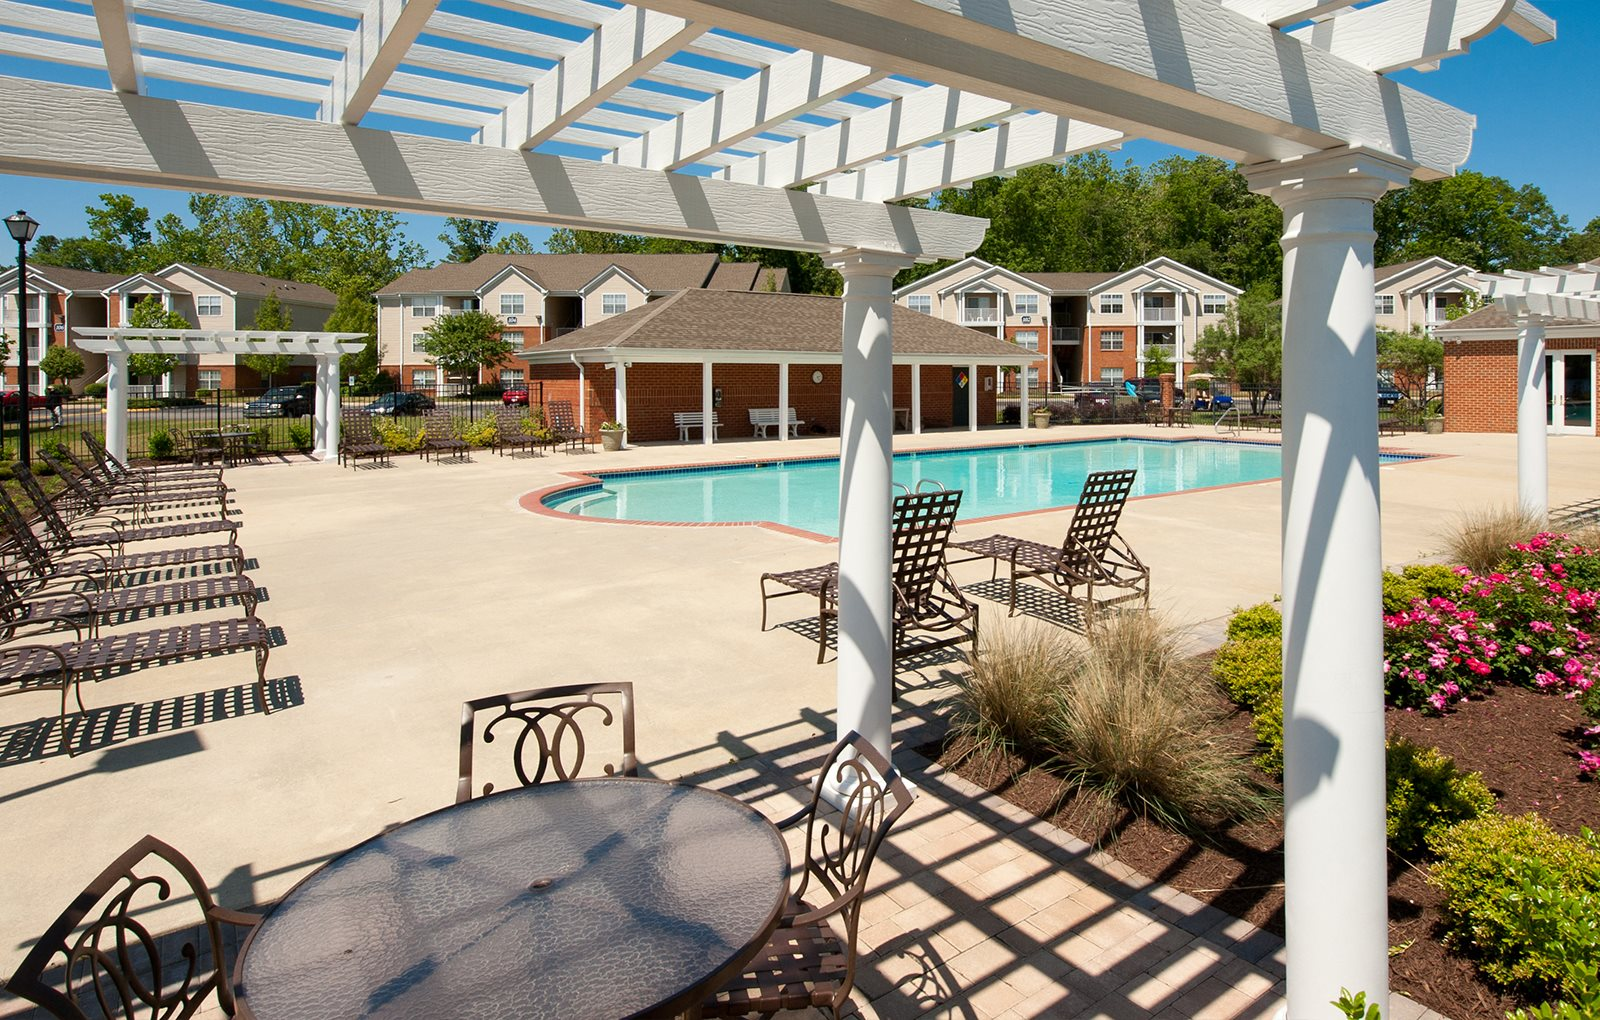 Pool With Cabanas and Chairs